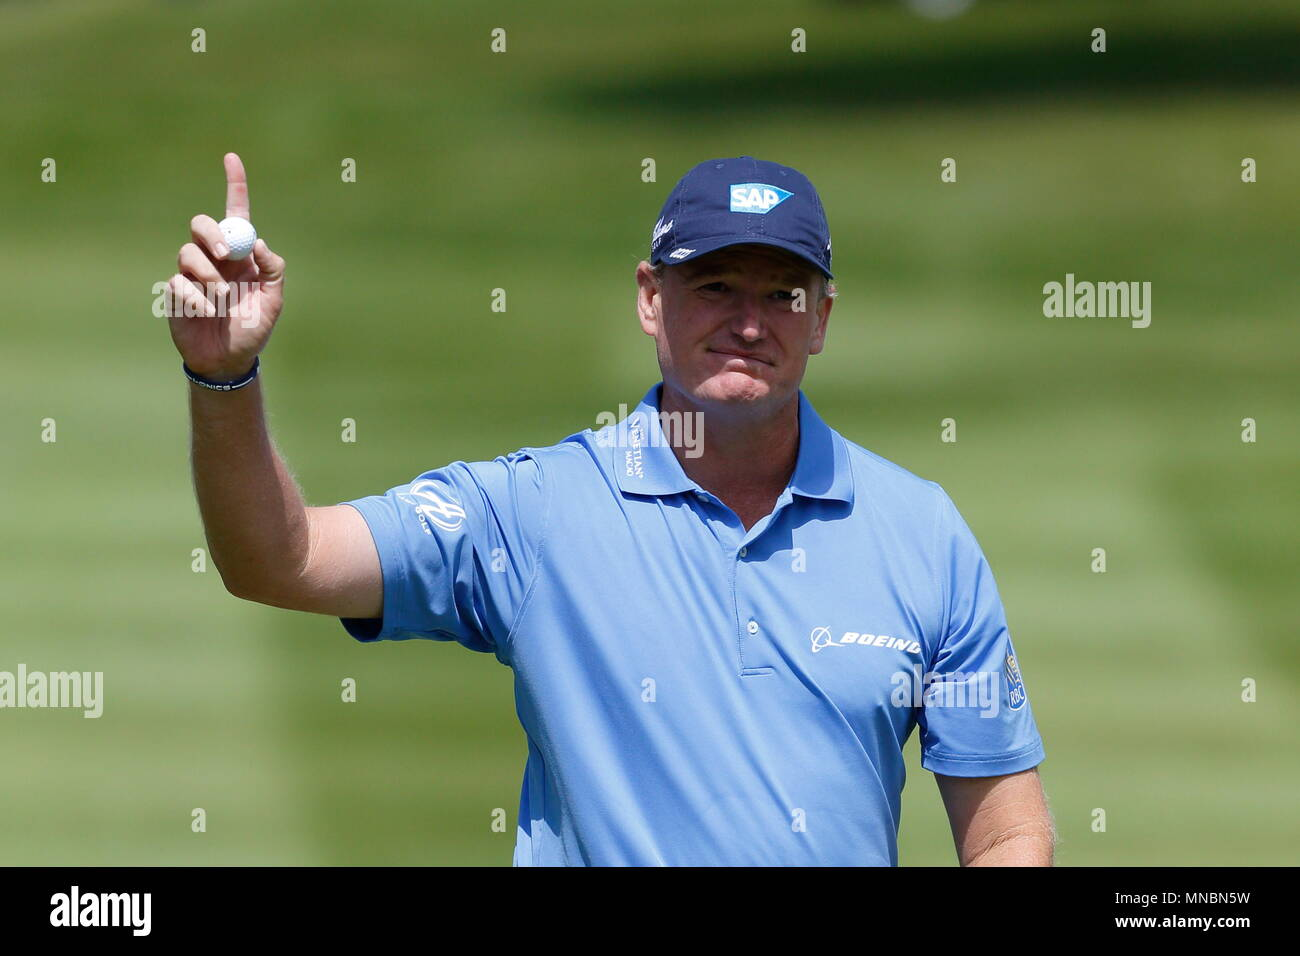 Ernie Els finishes par for the course and acknowledges the crowd at the 18th green during the first round of the BMW PGA Championship European tour at Wentworth Golf Club. 21 May 2015 - Stock Image